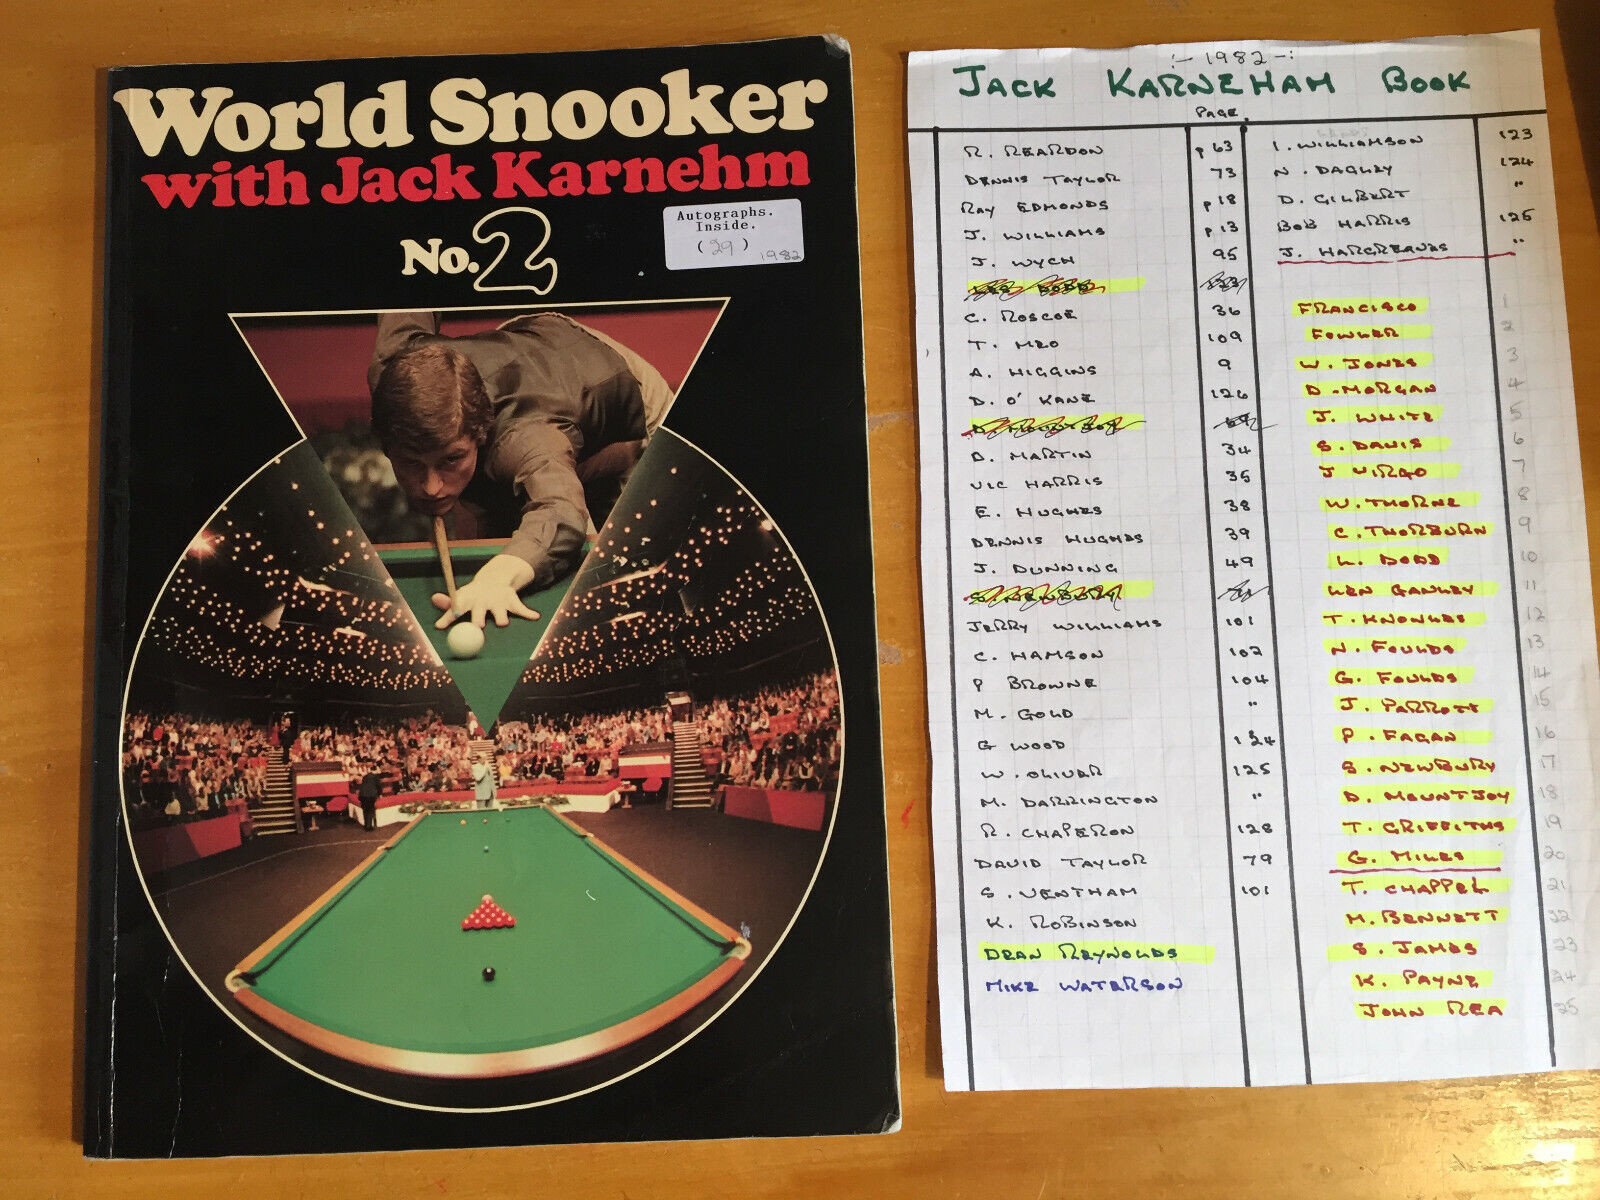 1982 Signed by 29 World Snooker Book with J Karnehm inc Francisco Thorburn Miles